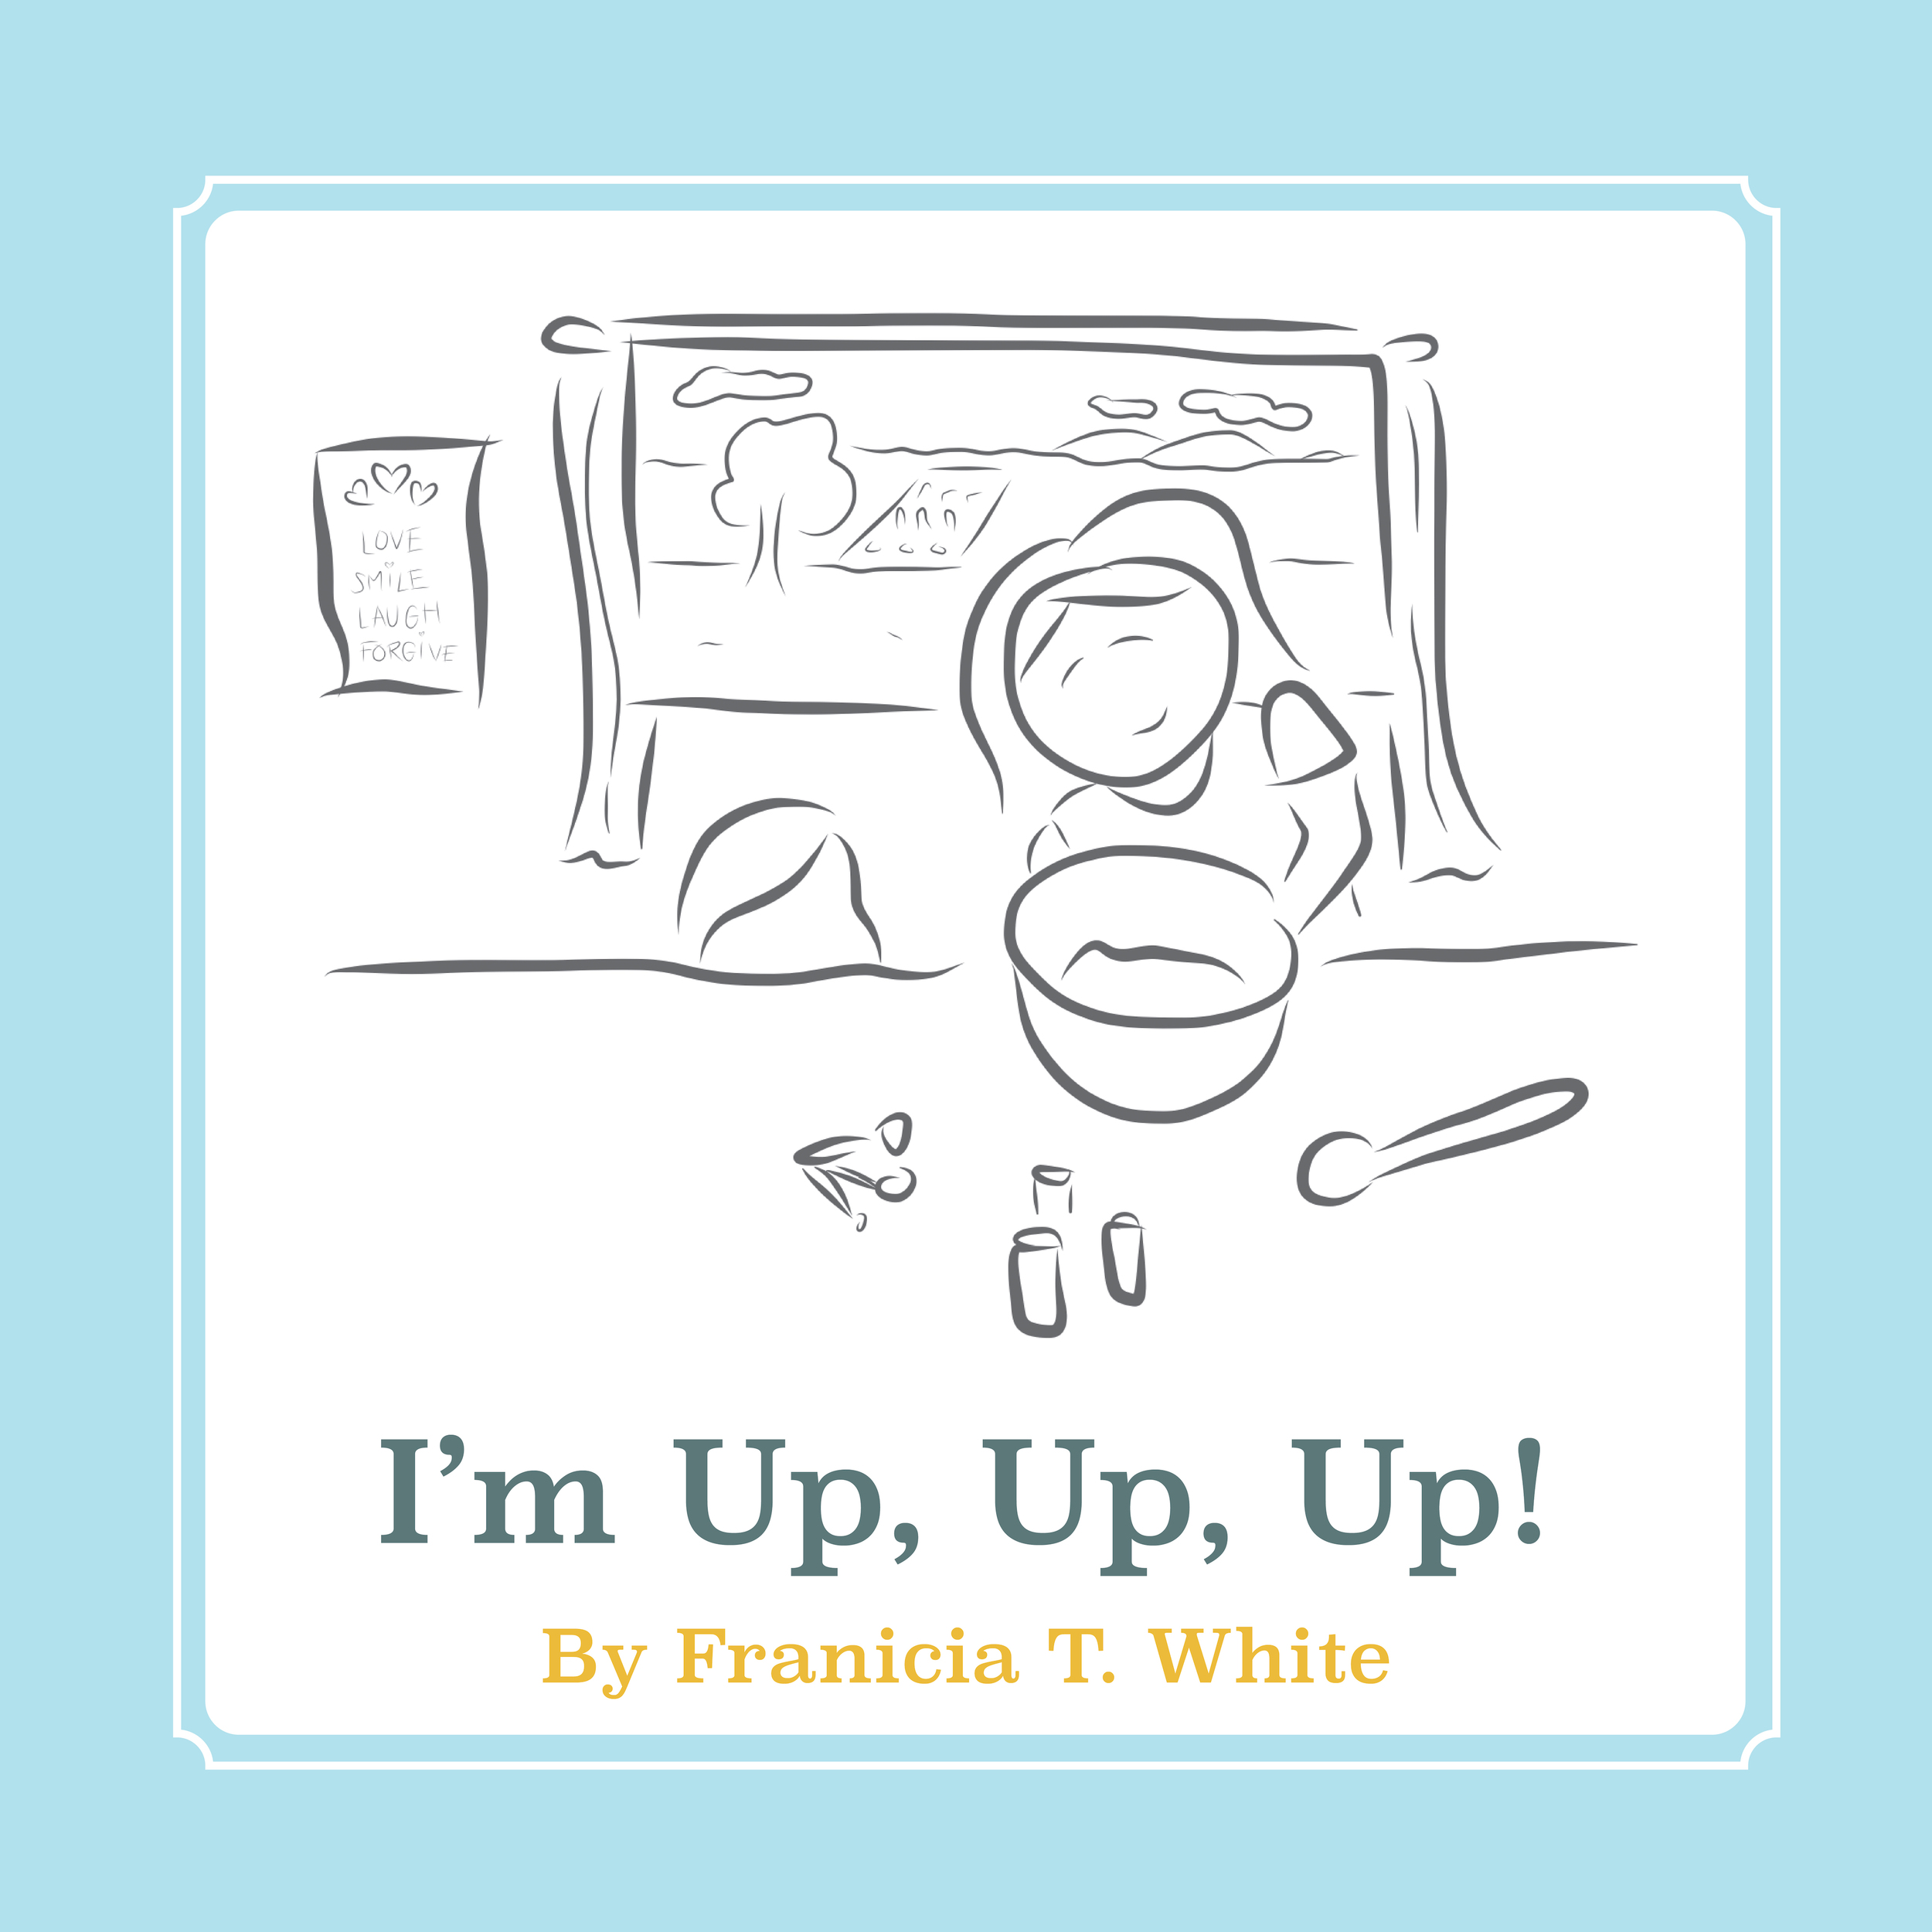 I'm Up, Up, Up by Franicia White